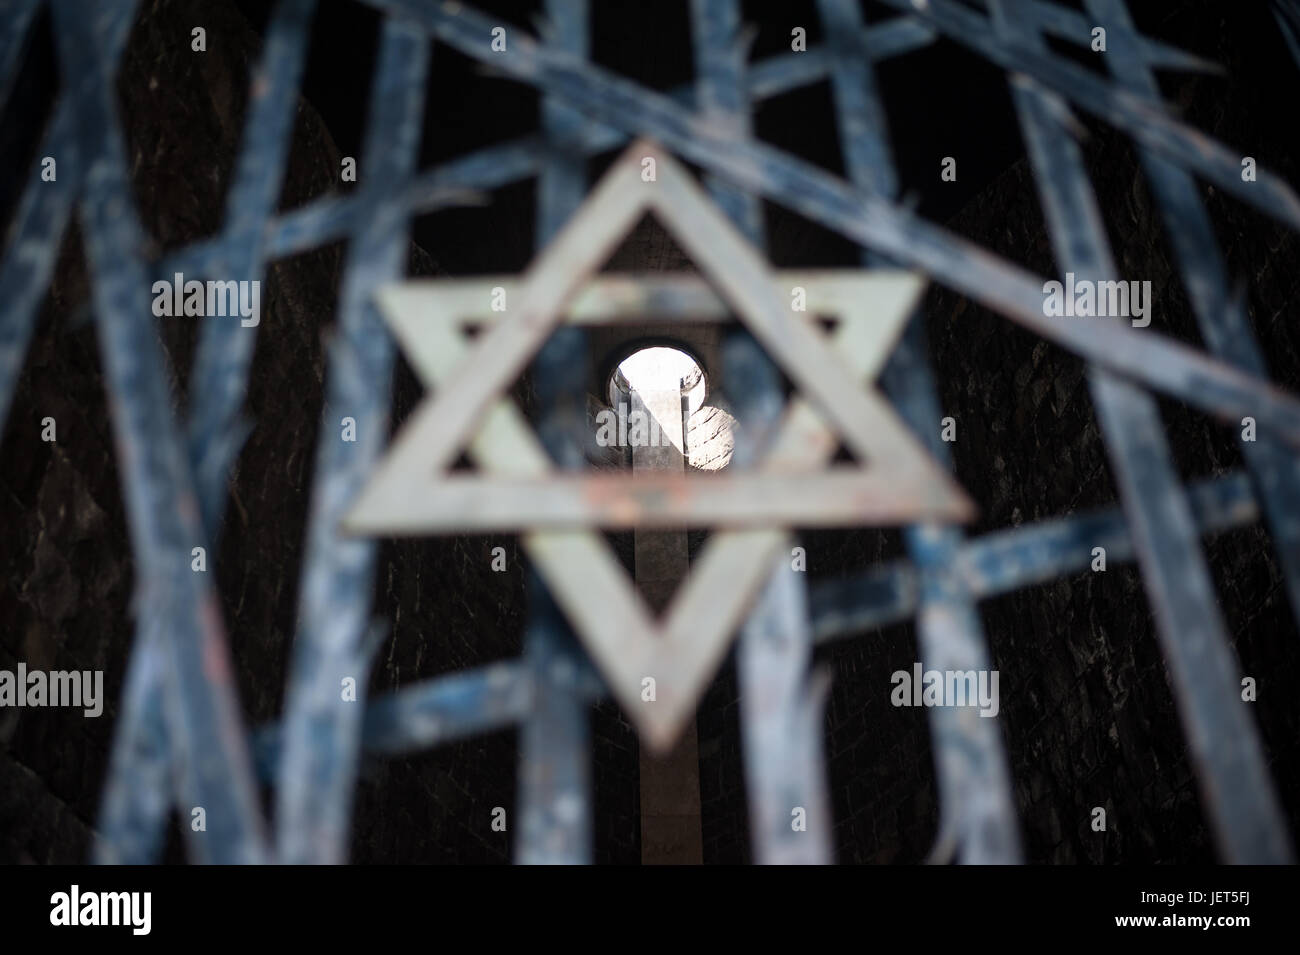 03.06.2017, Dachau, Bavaria, Germany, Europe - Gate to the chapel of the Jewish Memorial at the Memorial Site of Stock Photo